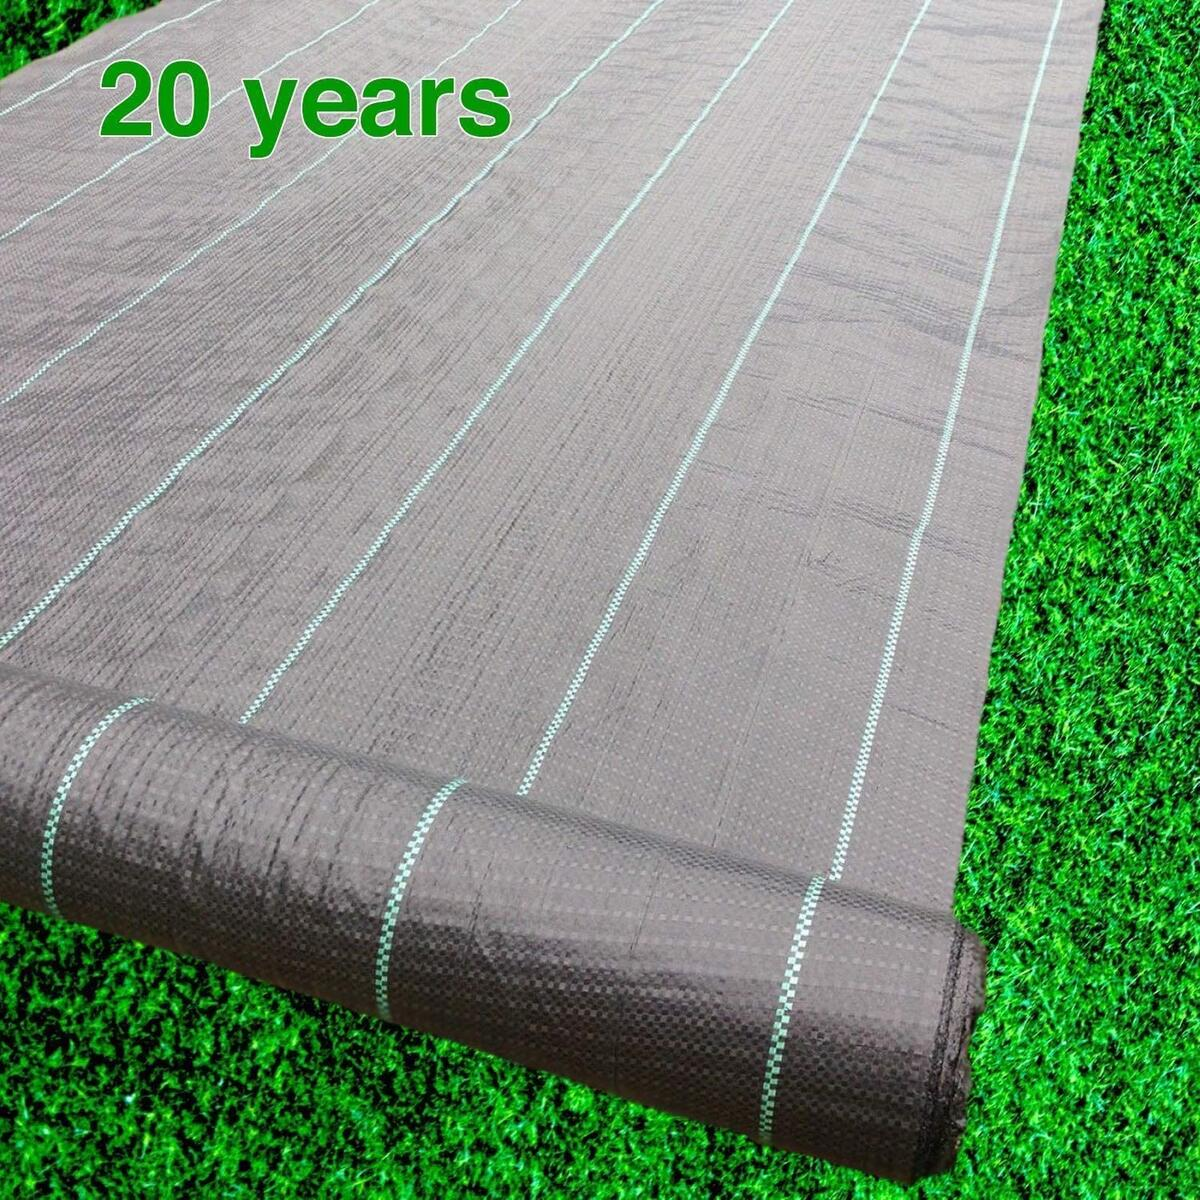 Premium Landscape Fabric Heavy Duty 4 x 100 ft 4.1oz/140gsm Black - Woven Weed Barrier Landscape Fabric - Garden Fabric Roll - Weedblock for Garden, Flower Bed, Driveway, Drainage and Weed Prevention